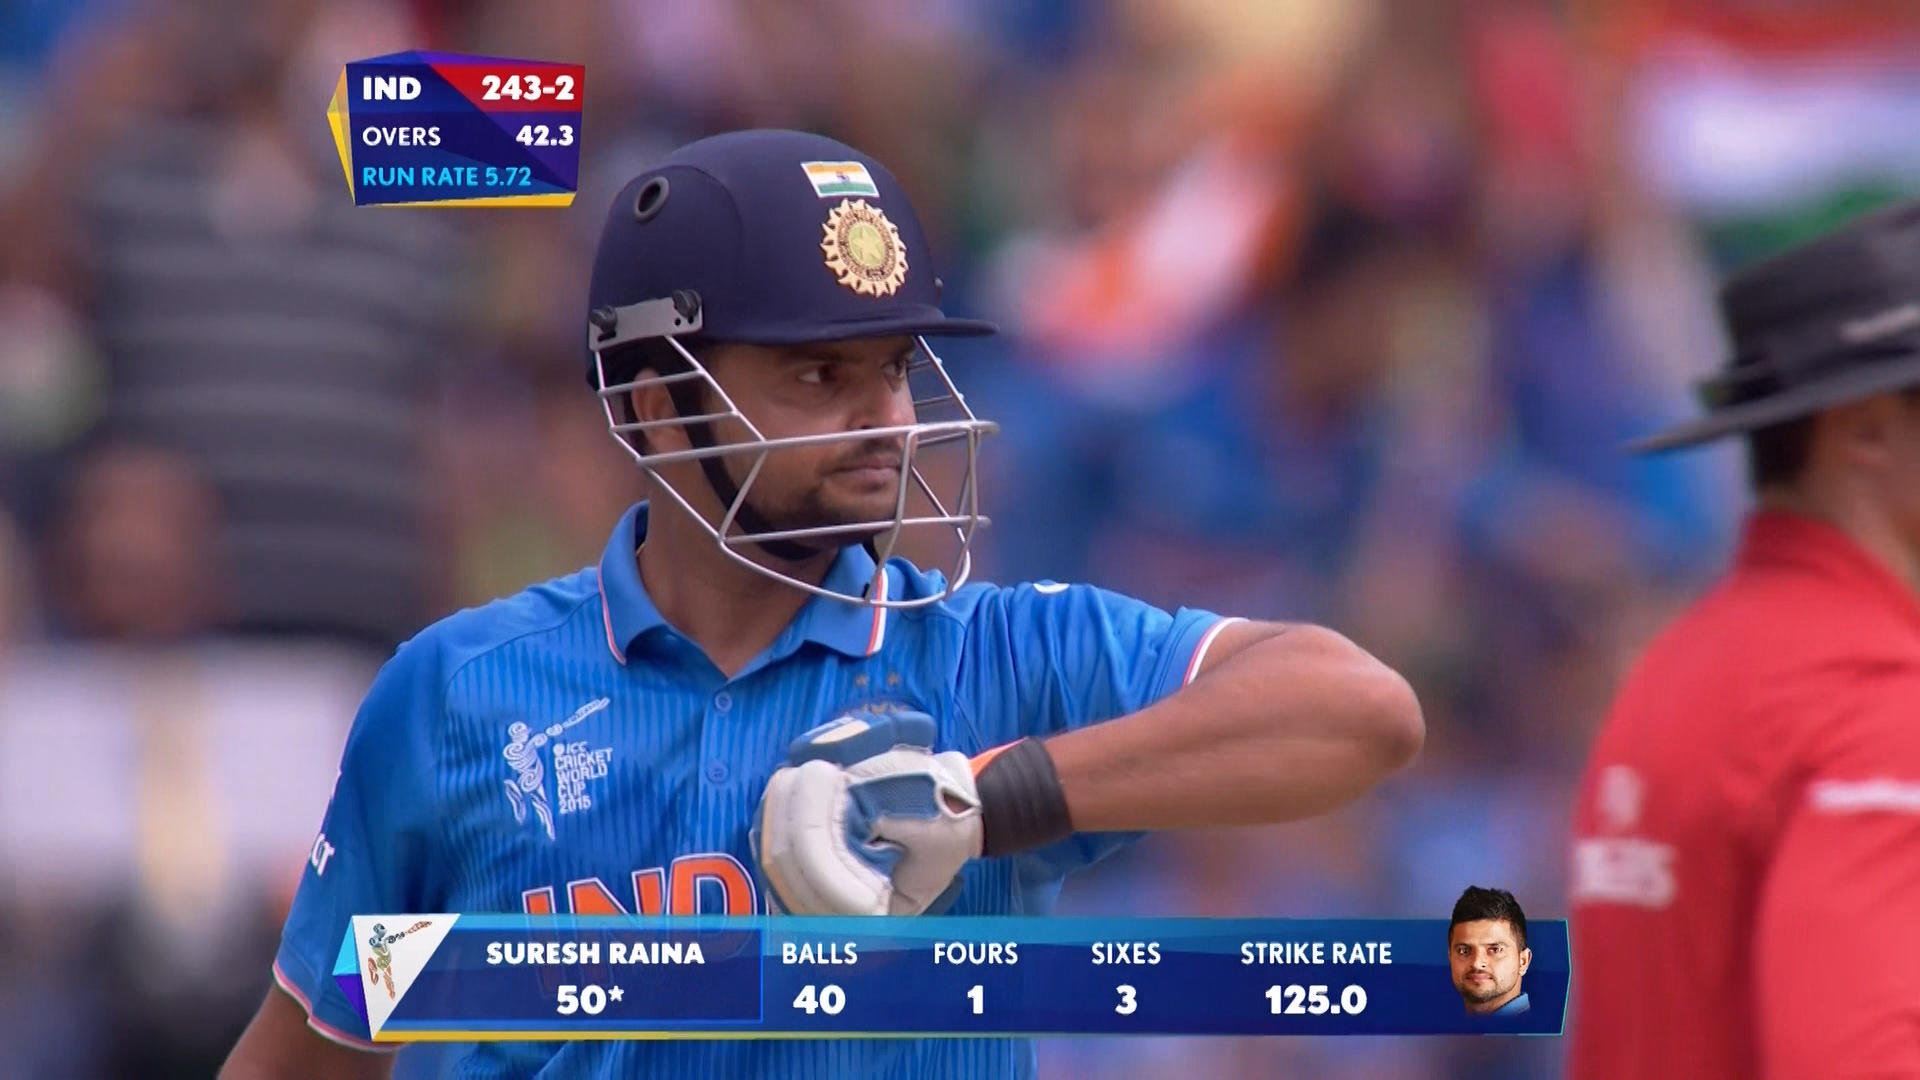 Match Hero –Suresh Raina – IND vs PAK